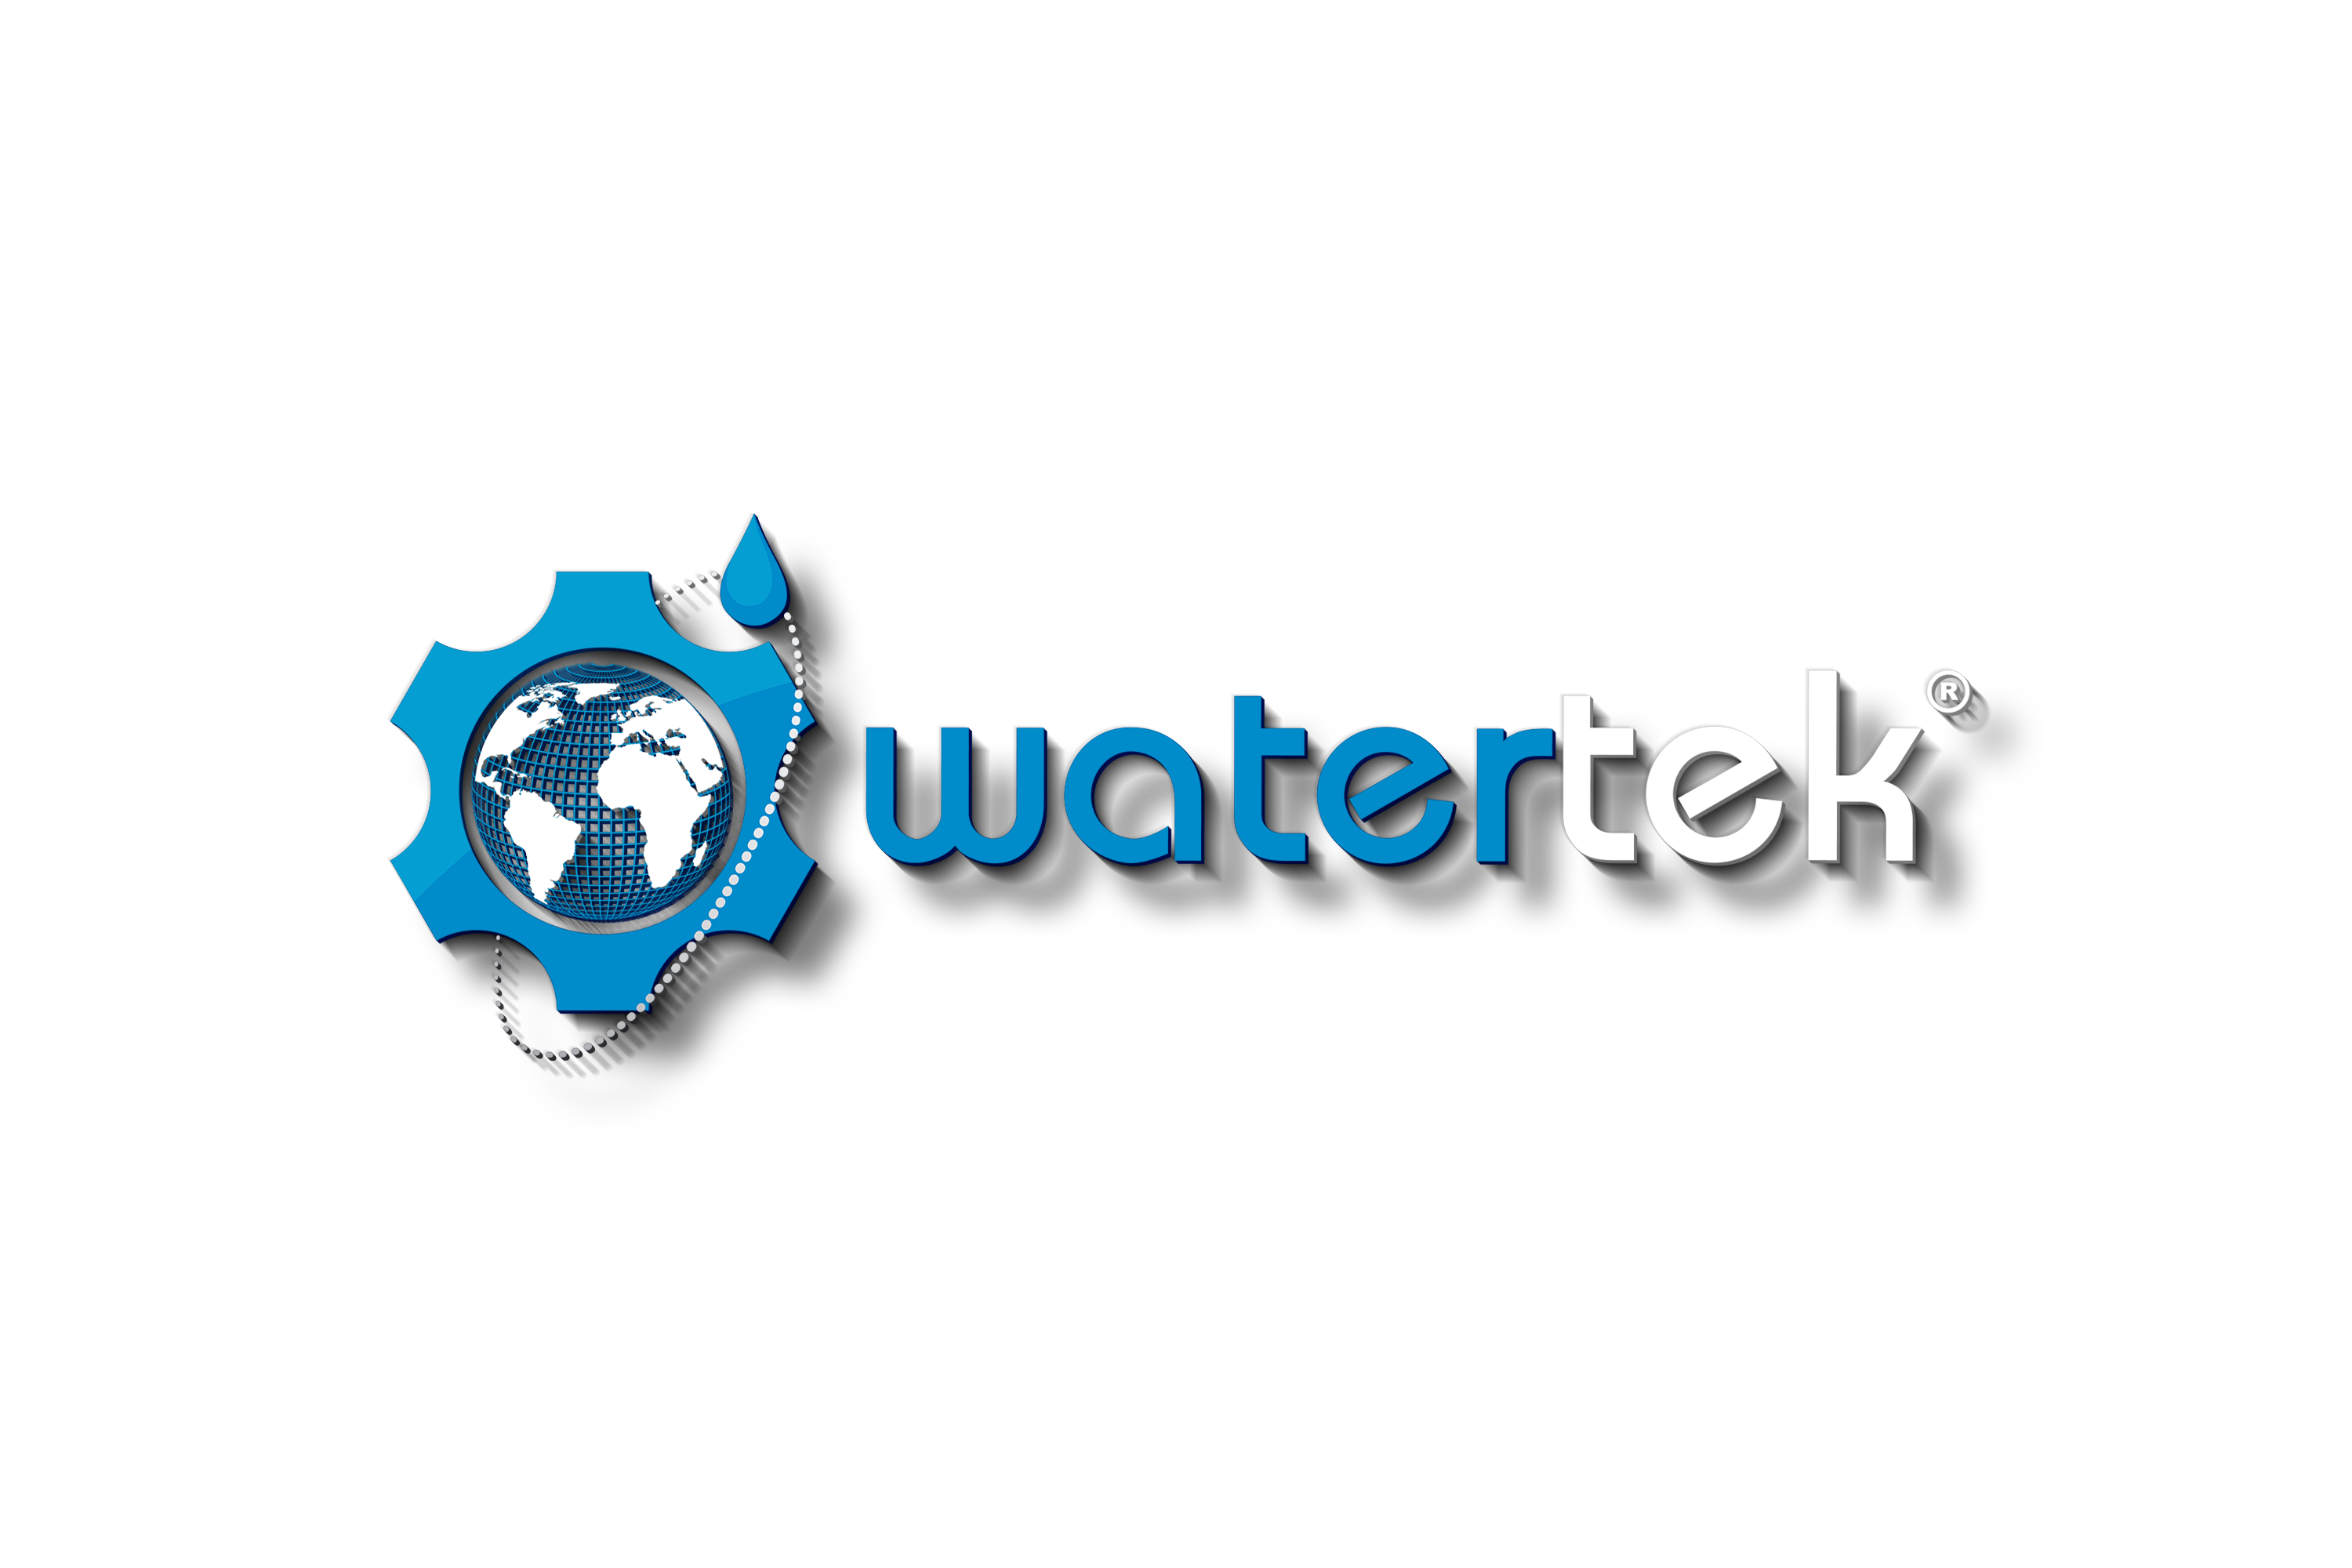 Watertek Logolar